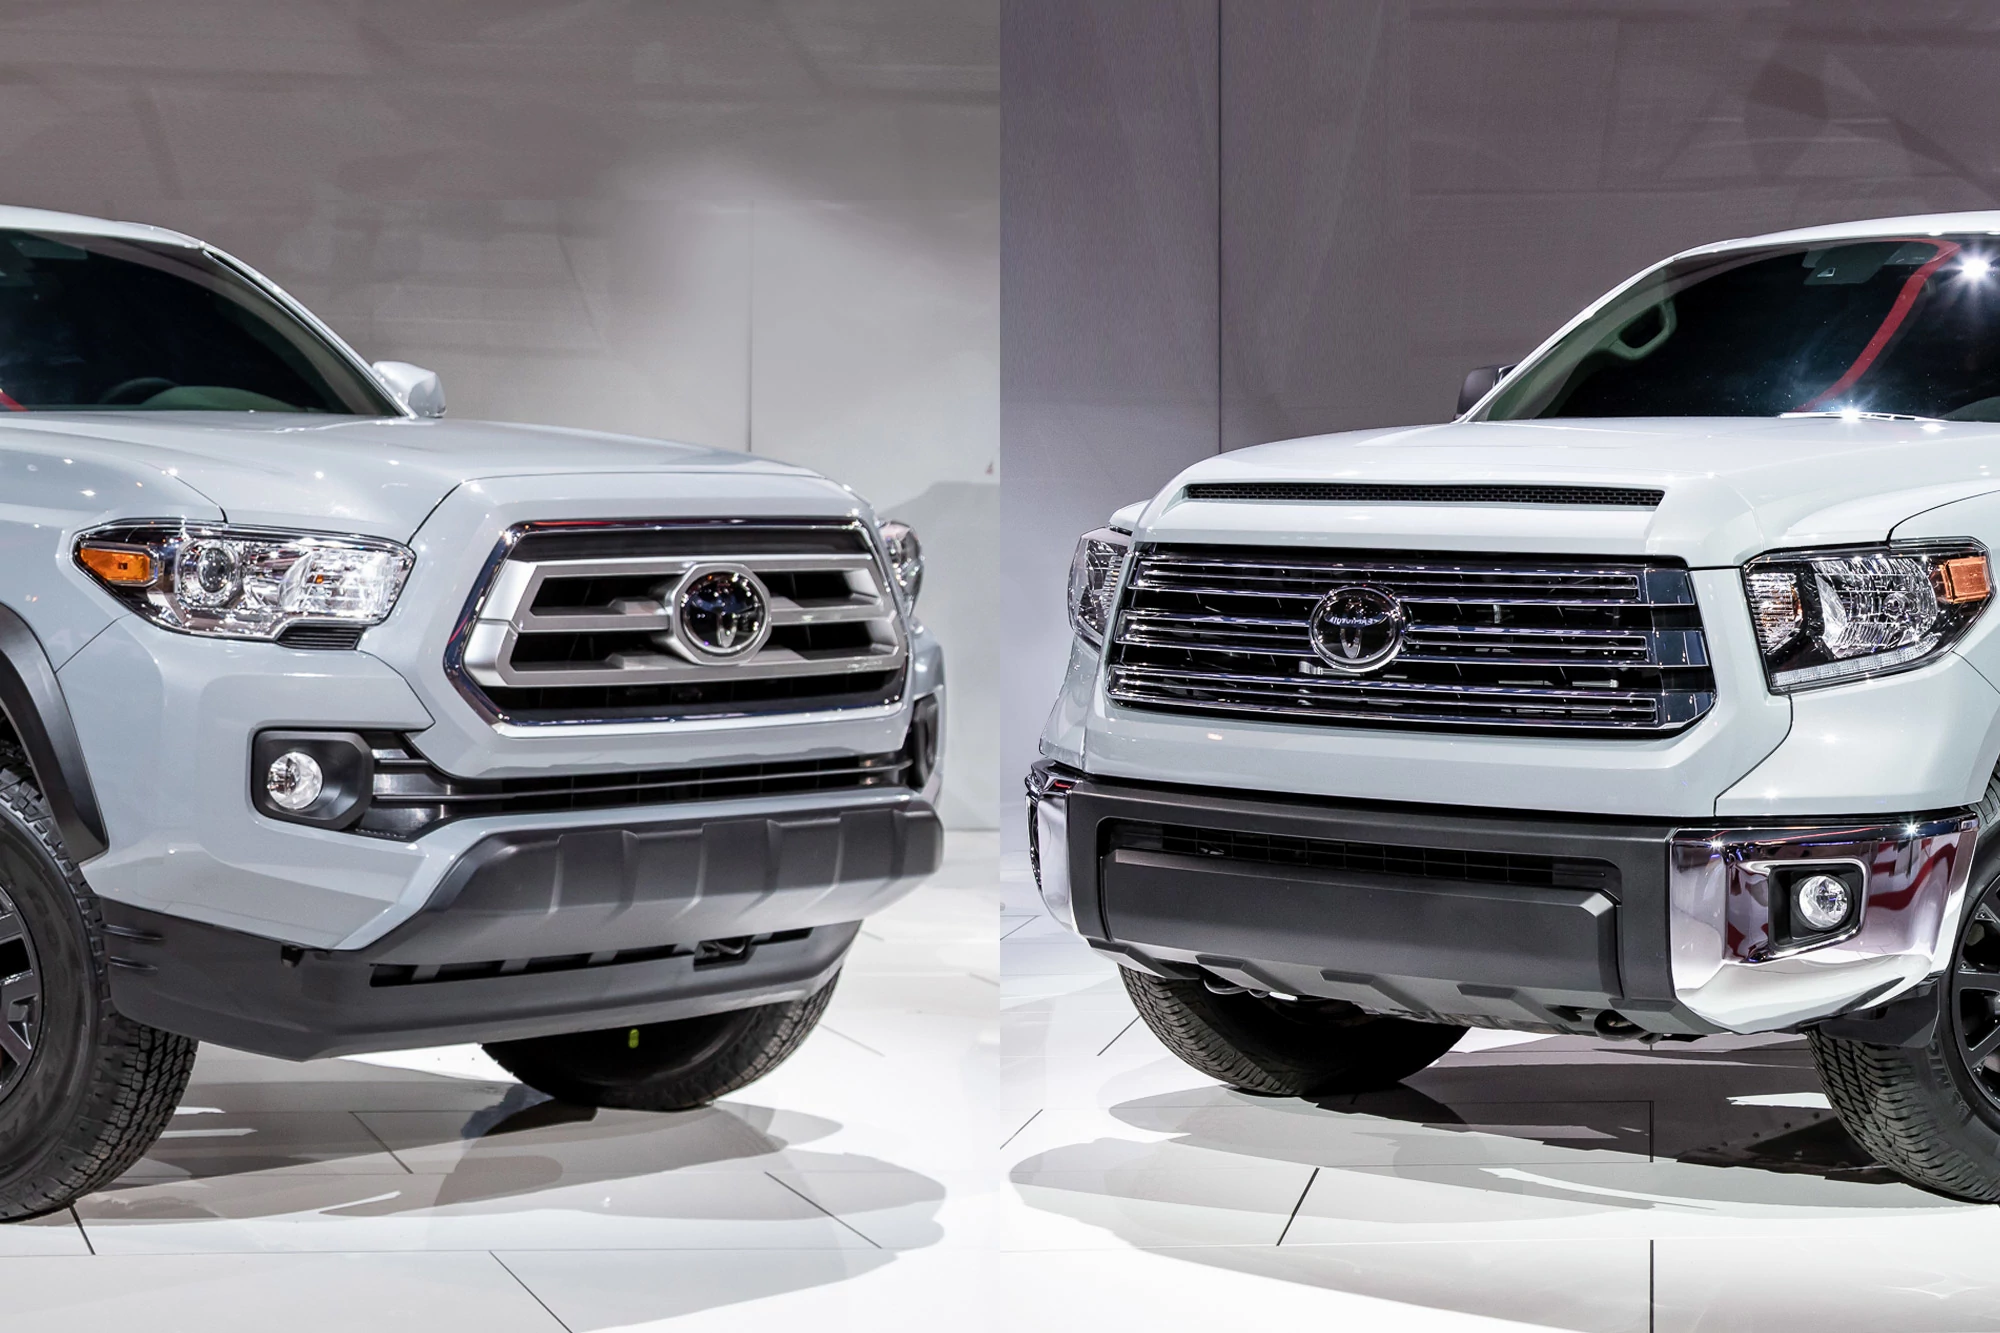 Tacoma Vs. Tundra: Stacking Up Toyota's Pickup Trucks